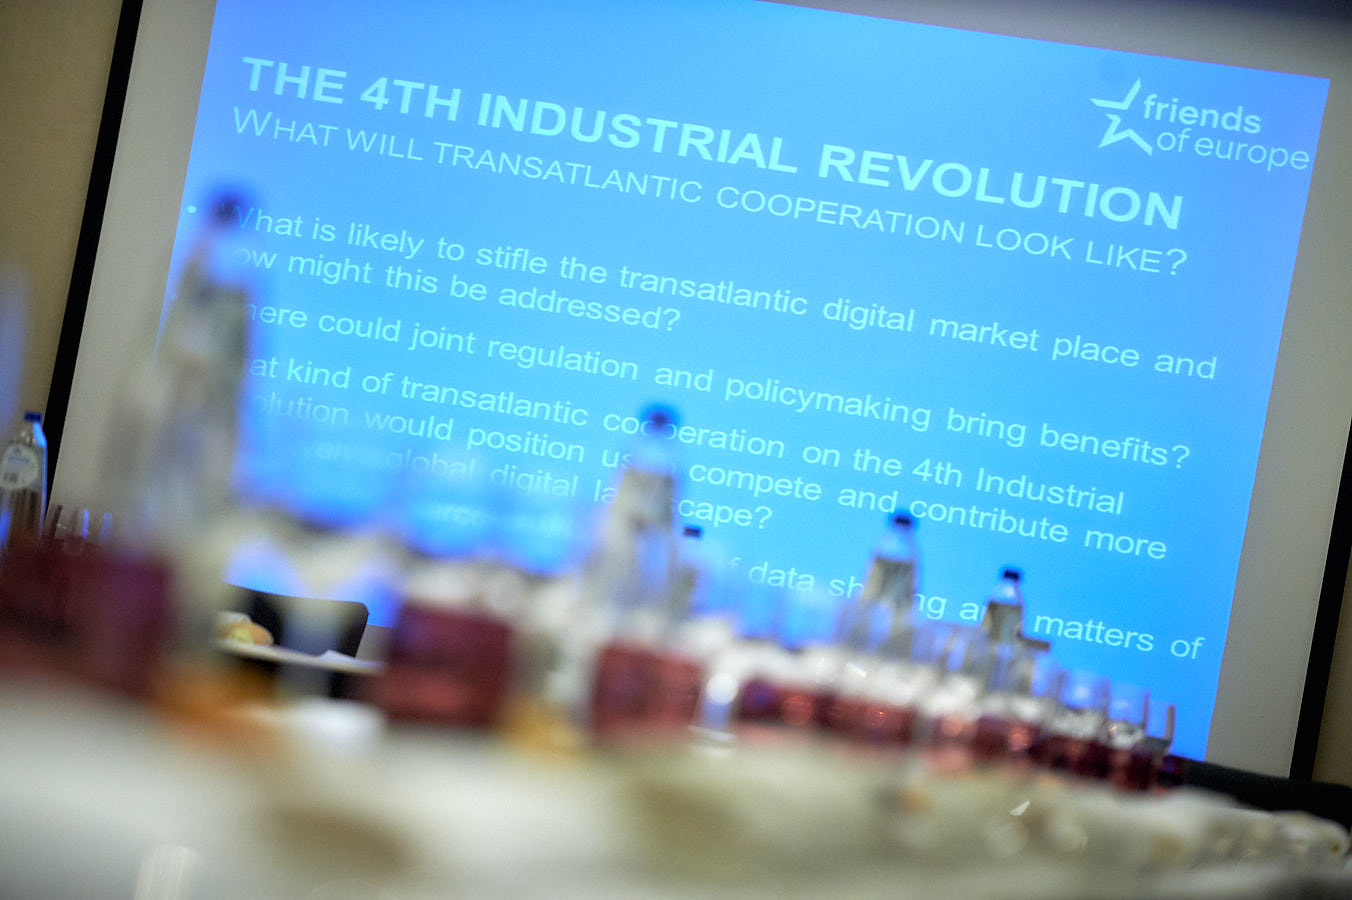 The 4th industrial revolution working group